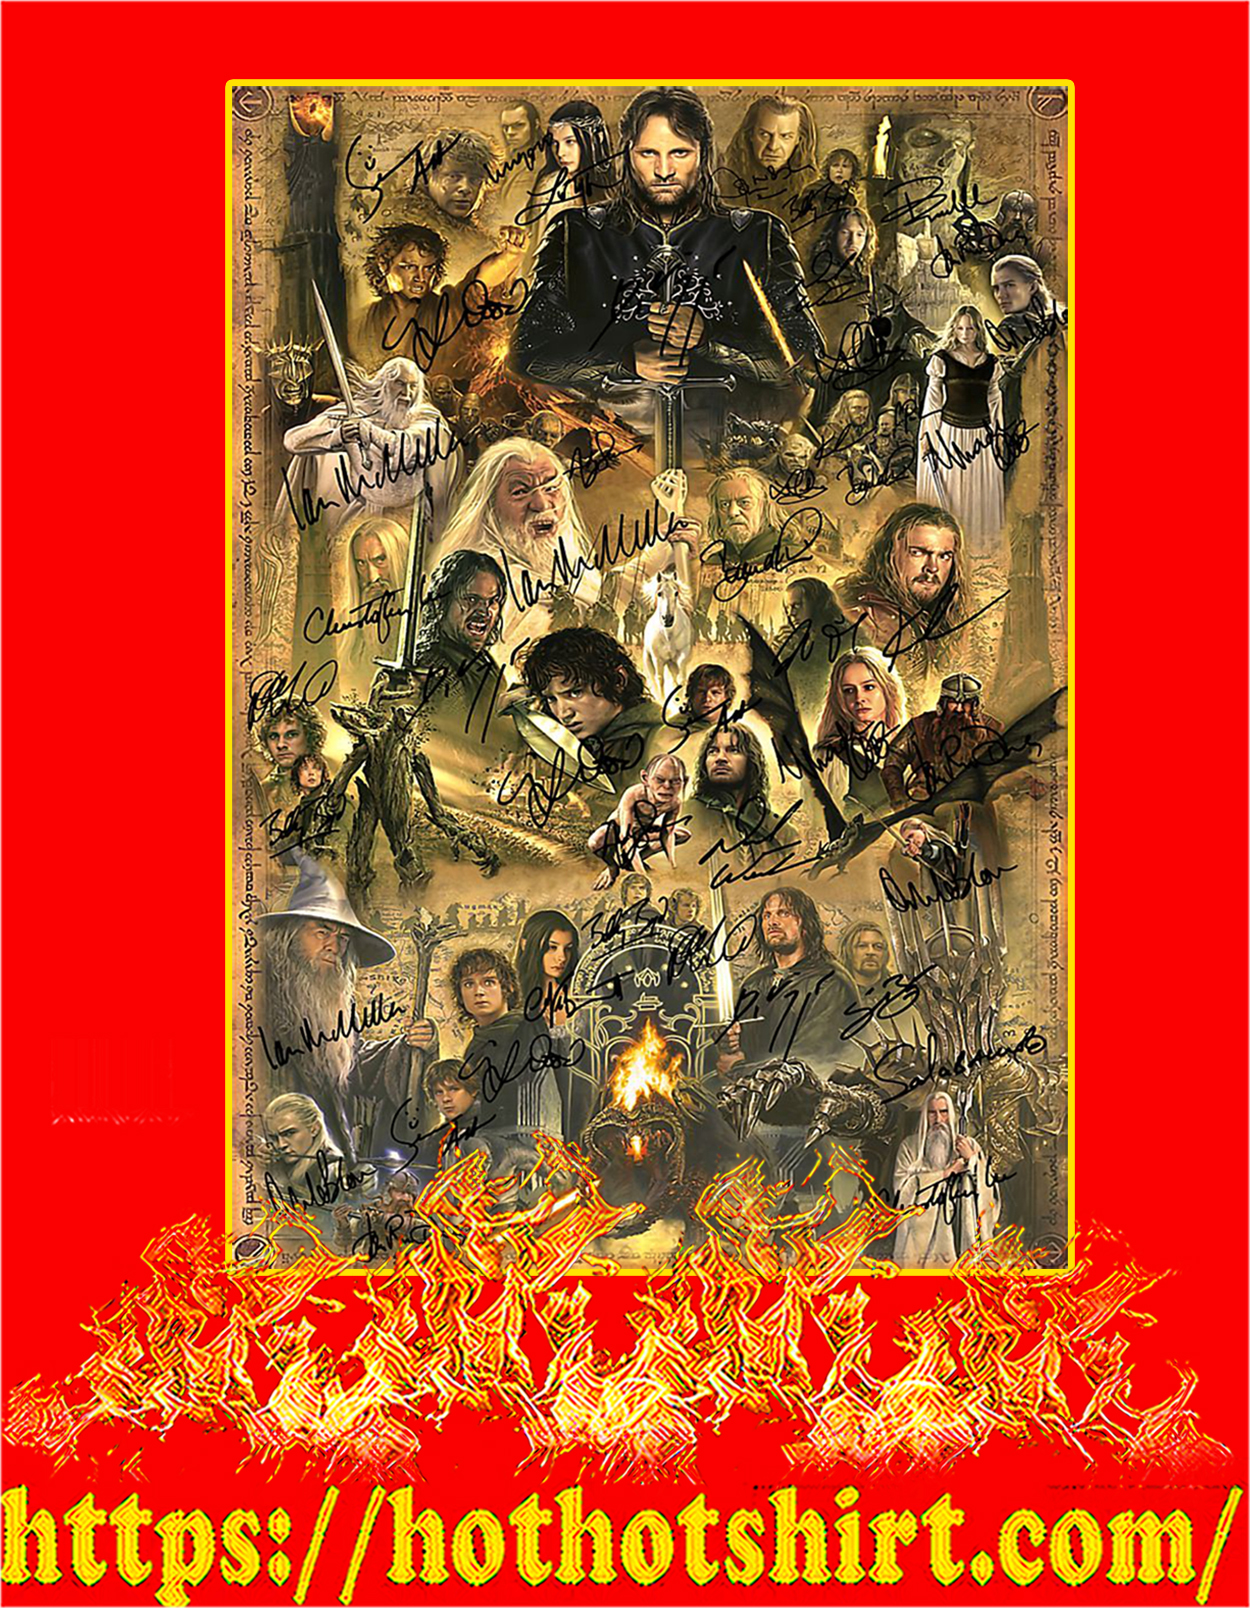 The lord of the rings actor signature poster - A3